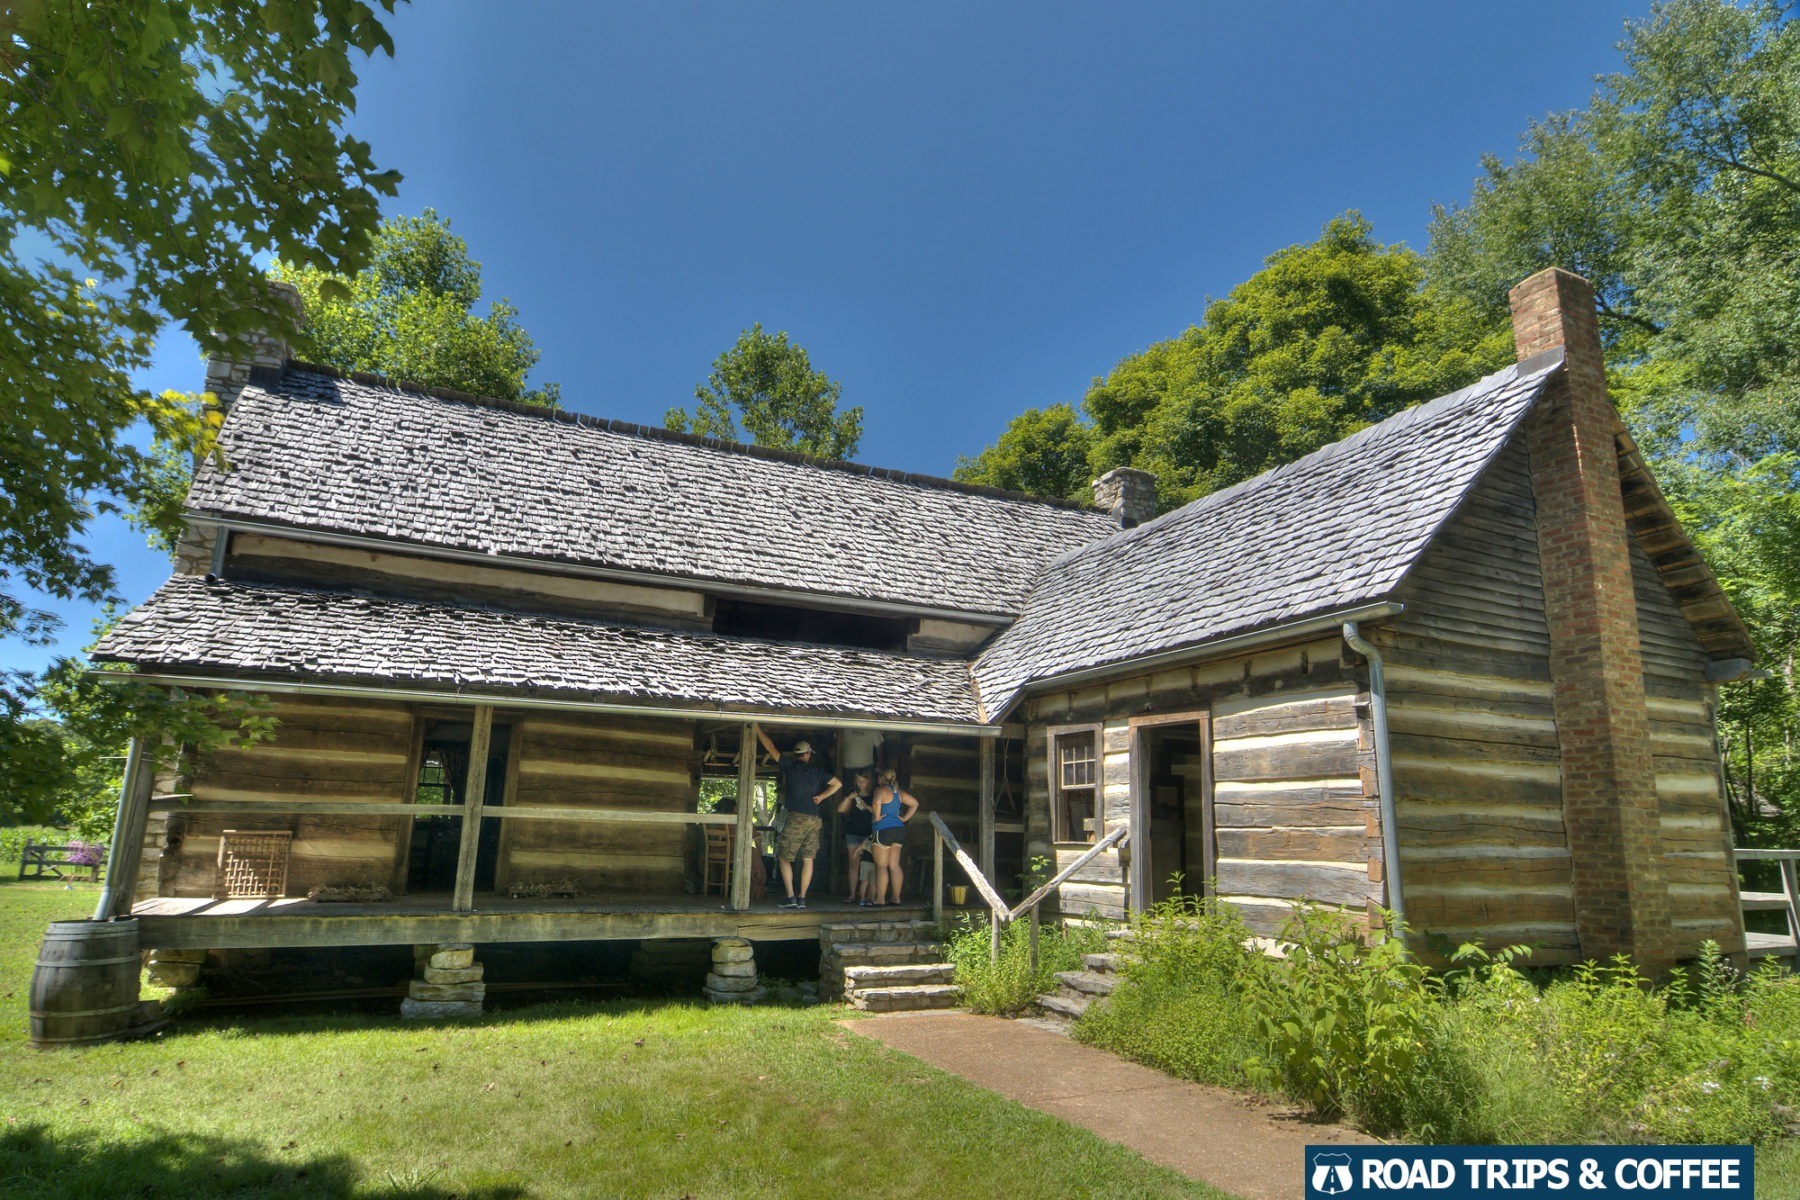 A rustic dogtrot cabin at Homeplace 1850s Working Farm in Land Between the Lakes National Recreation Area